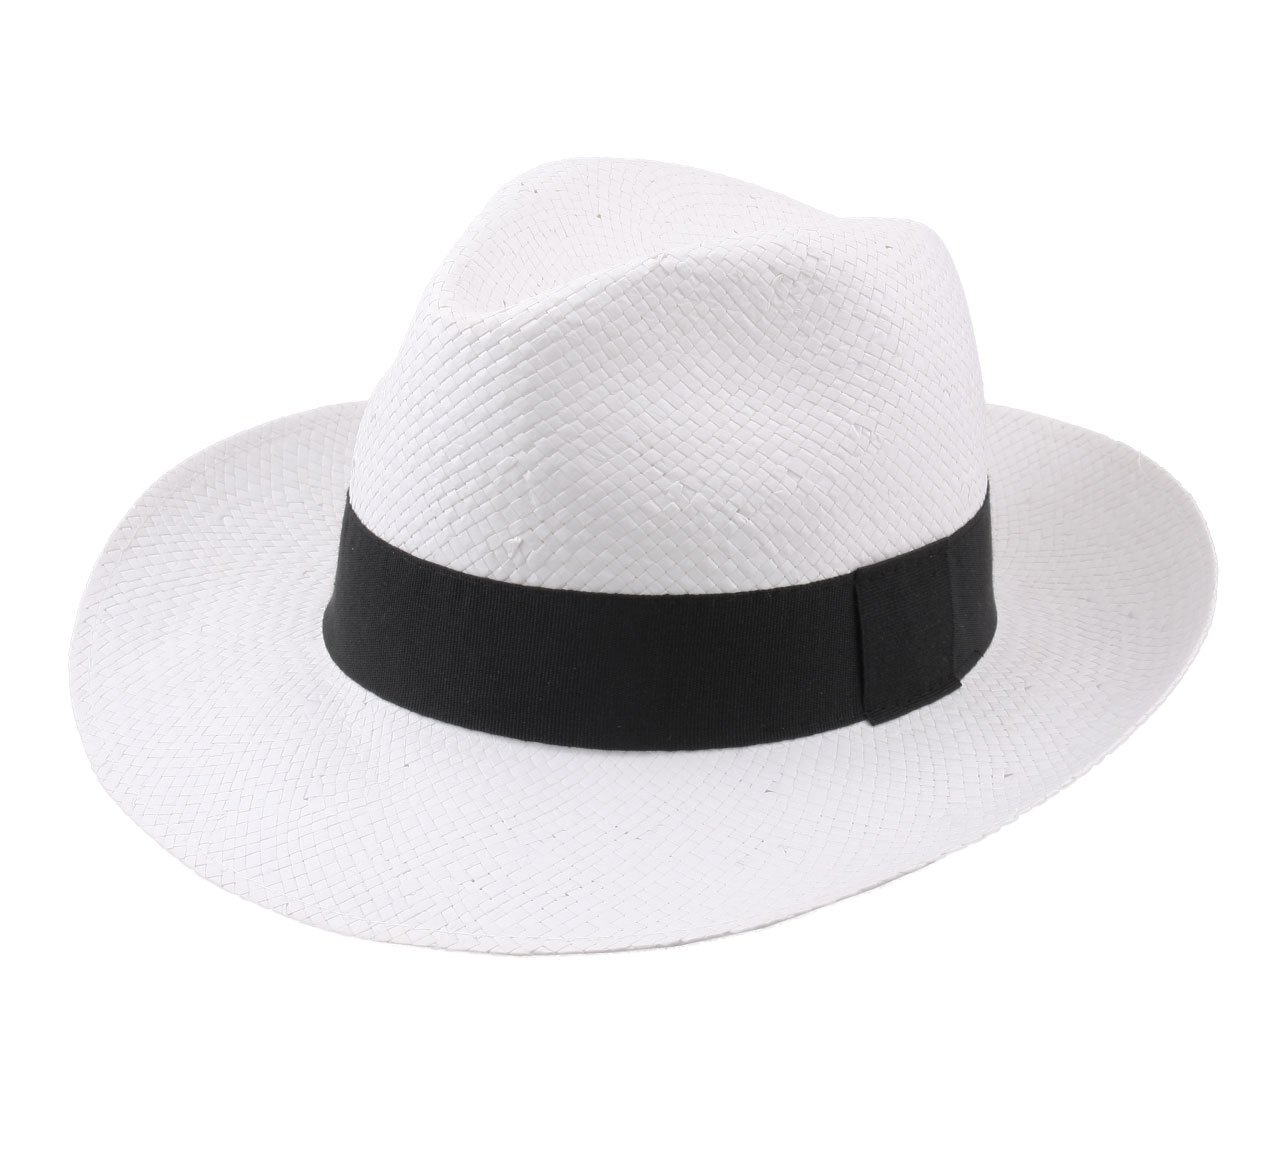 Classic Italy Paille Large Panama Hat